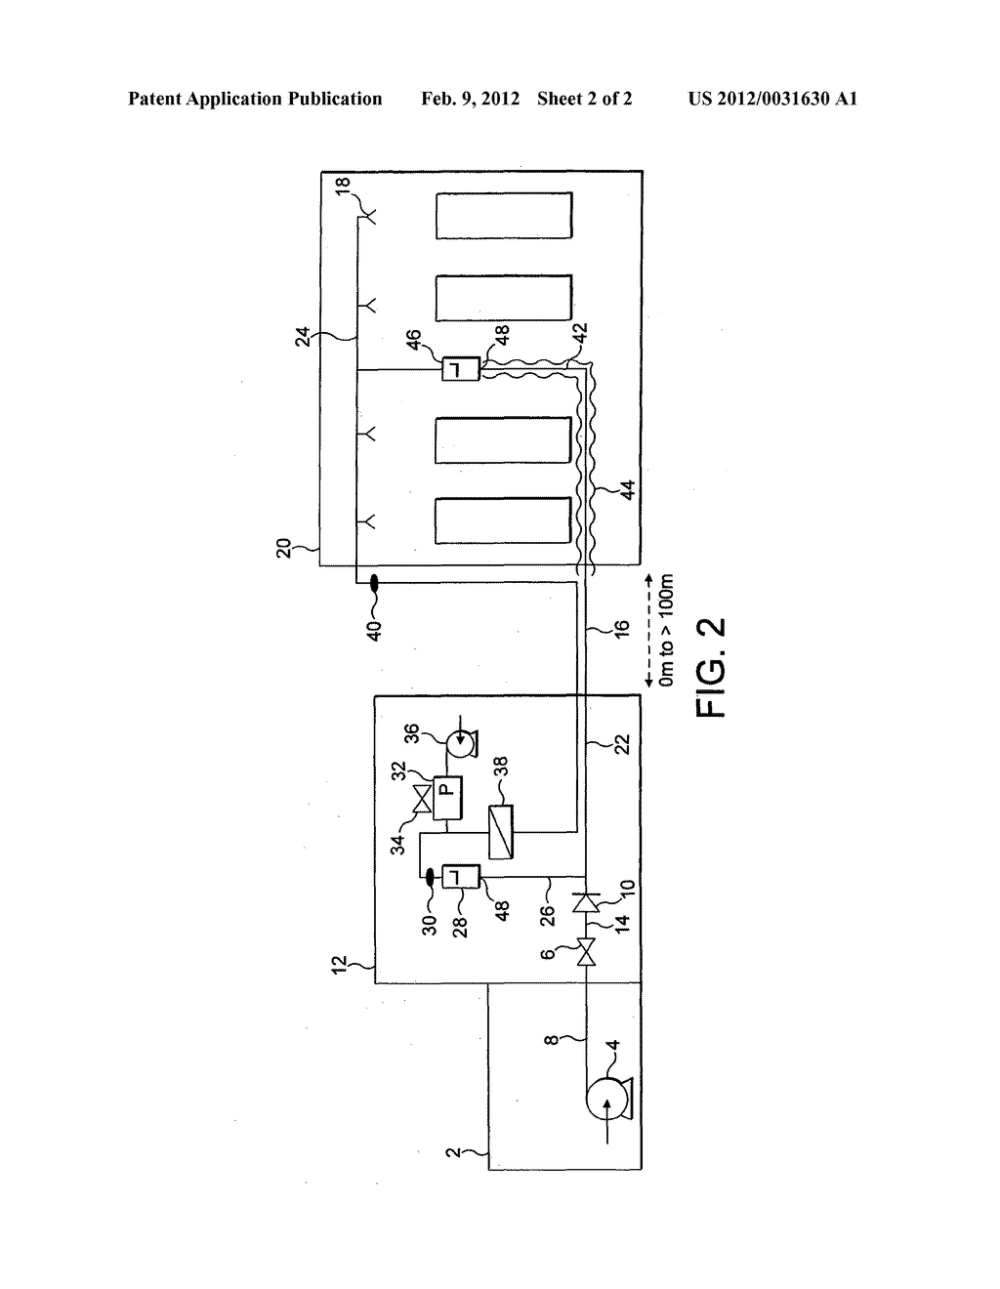 medium resolution of dry pipe sprinkler system diagram schematic and image 03 sprinkler riser system piping sprinkler riser diagram